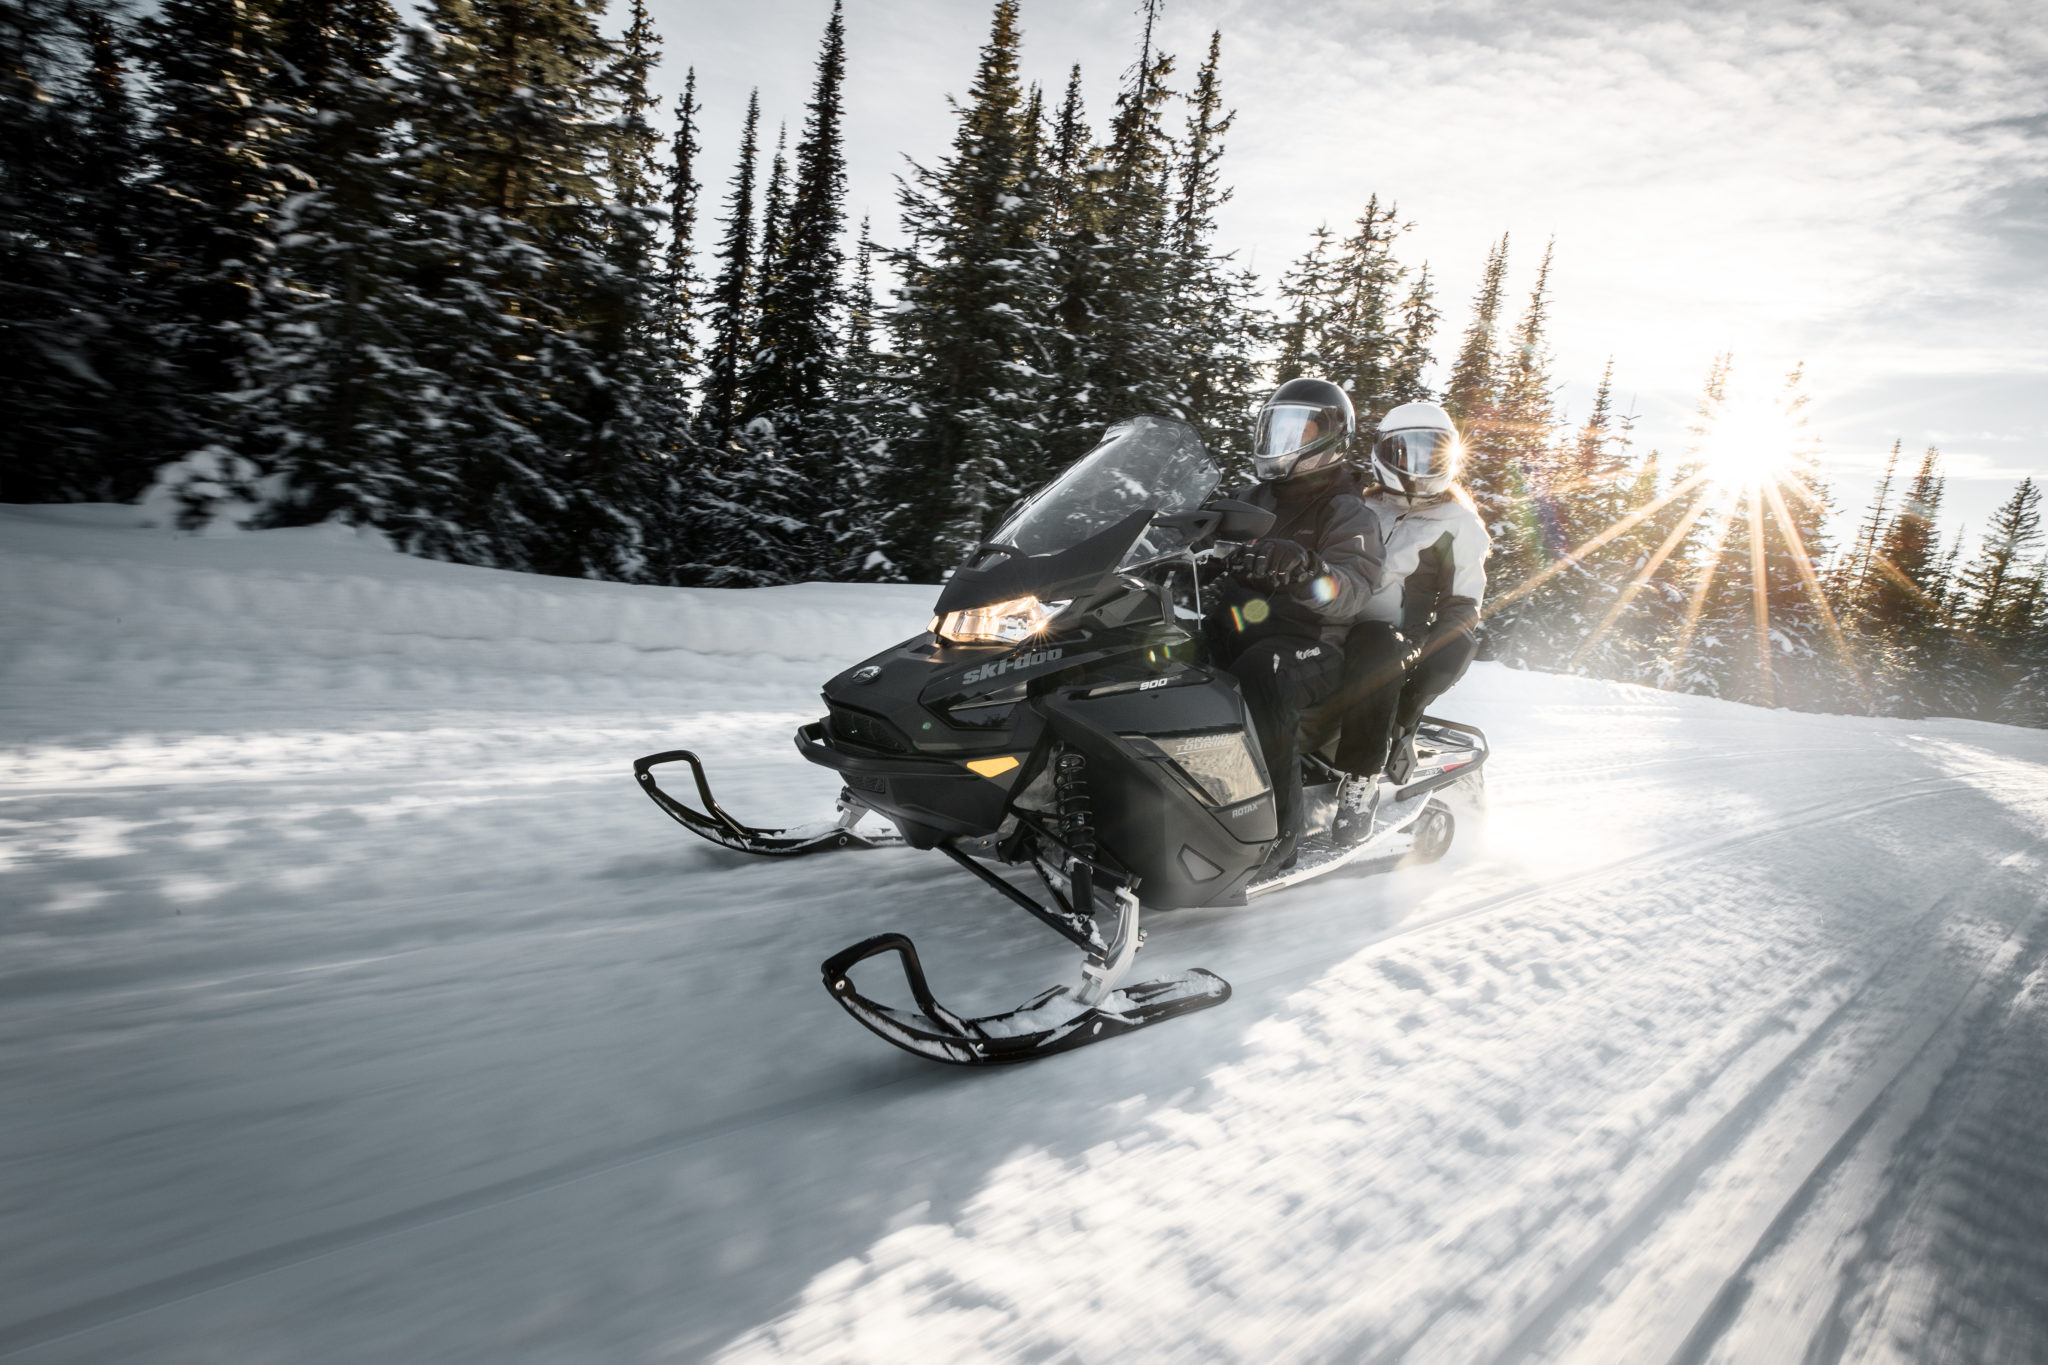 Vail Backcountry Tours - Snowmobile Tours | Vail Backcountry